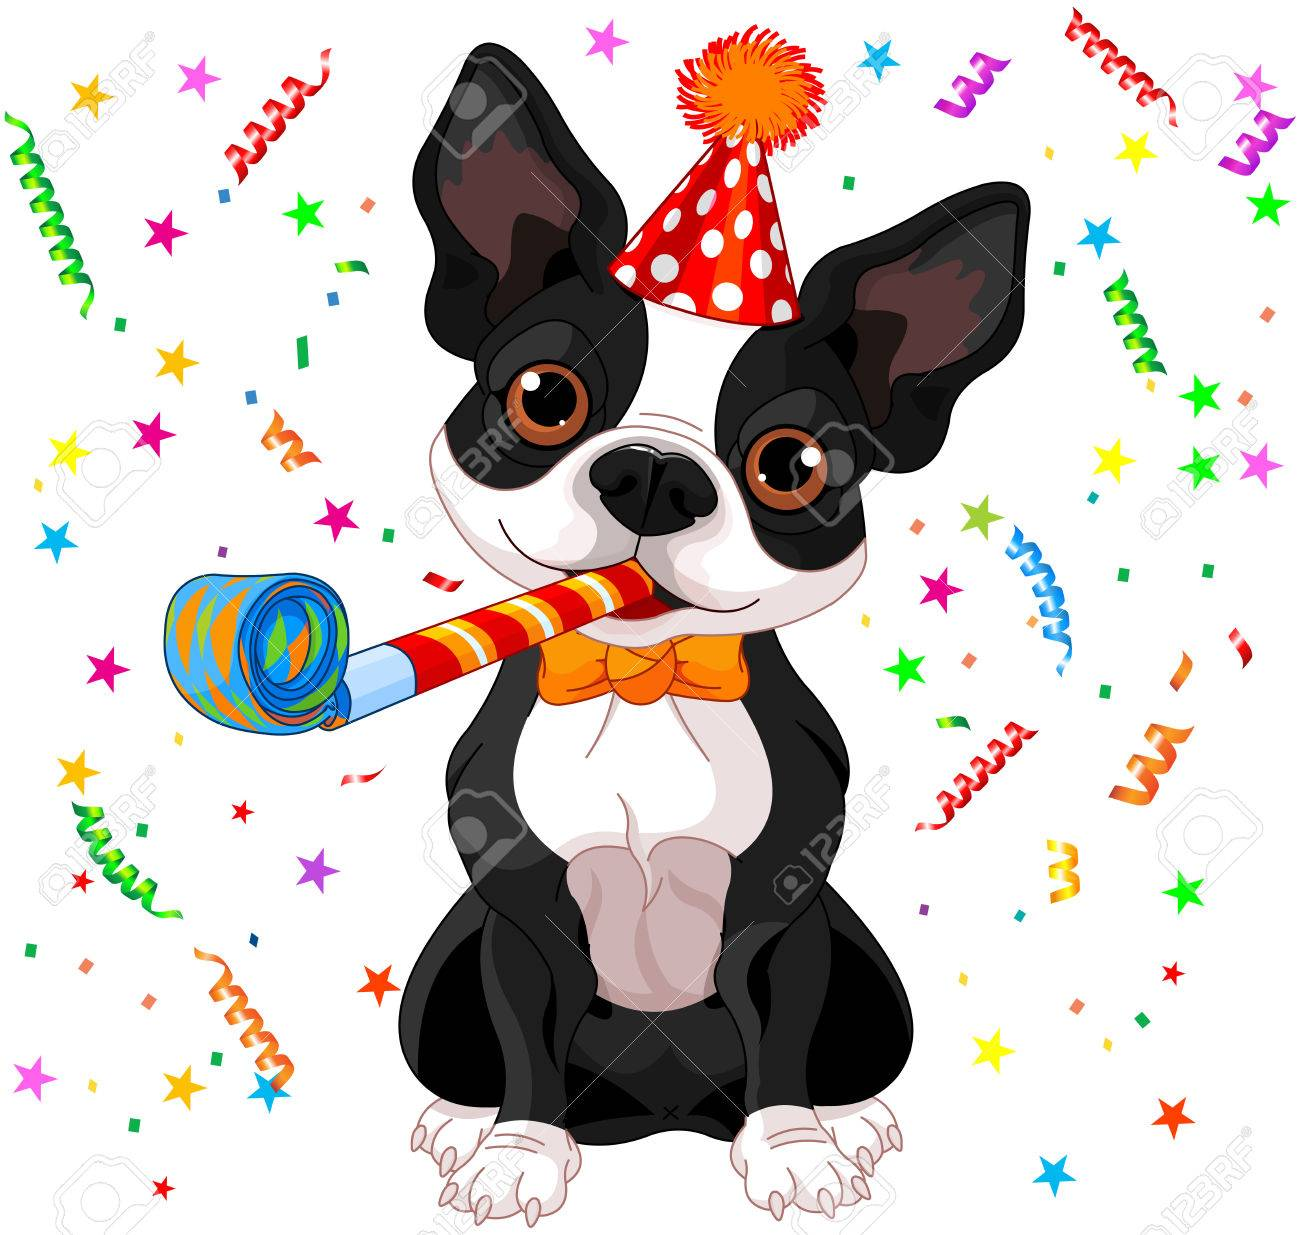 Carnet de bord de Douglas - Page 3 35588778-illustration-of-cute-boston-terrier-celebrating